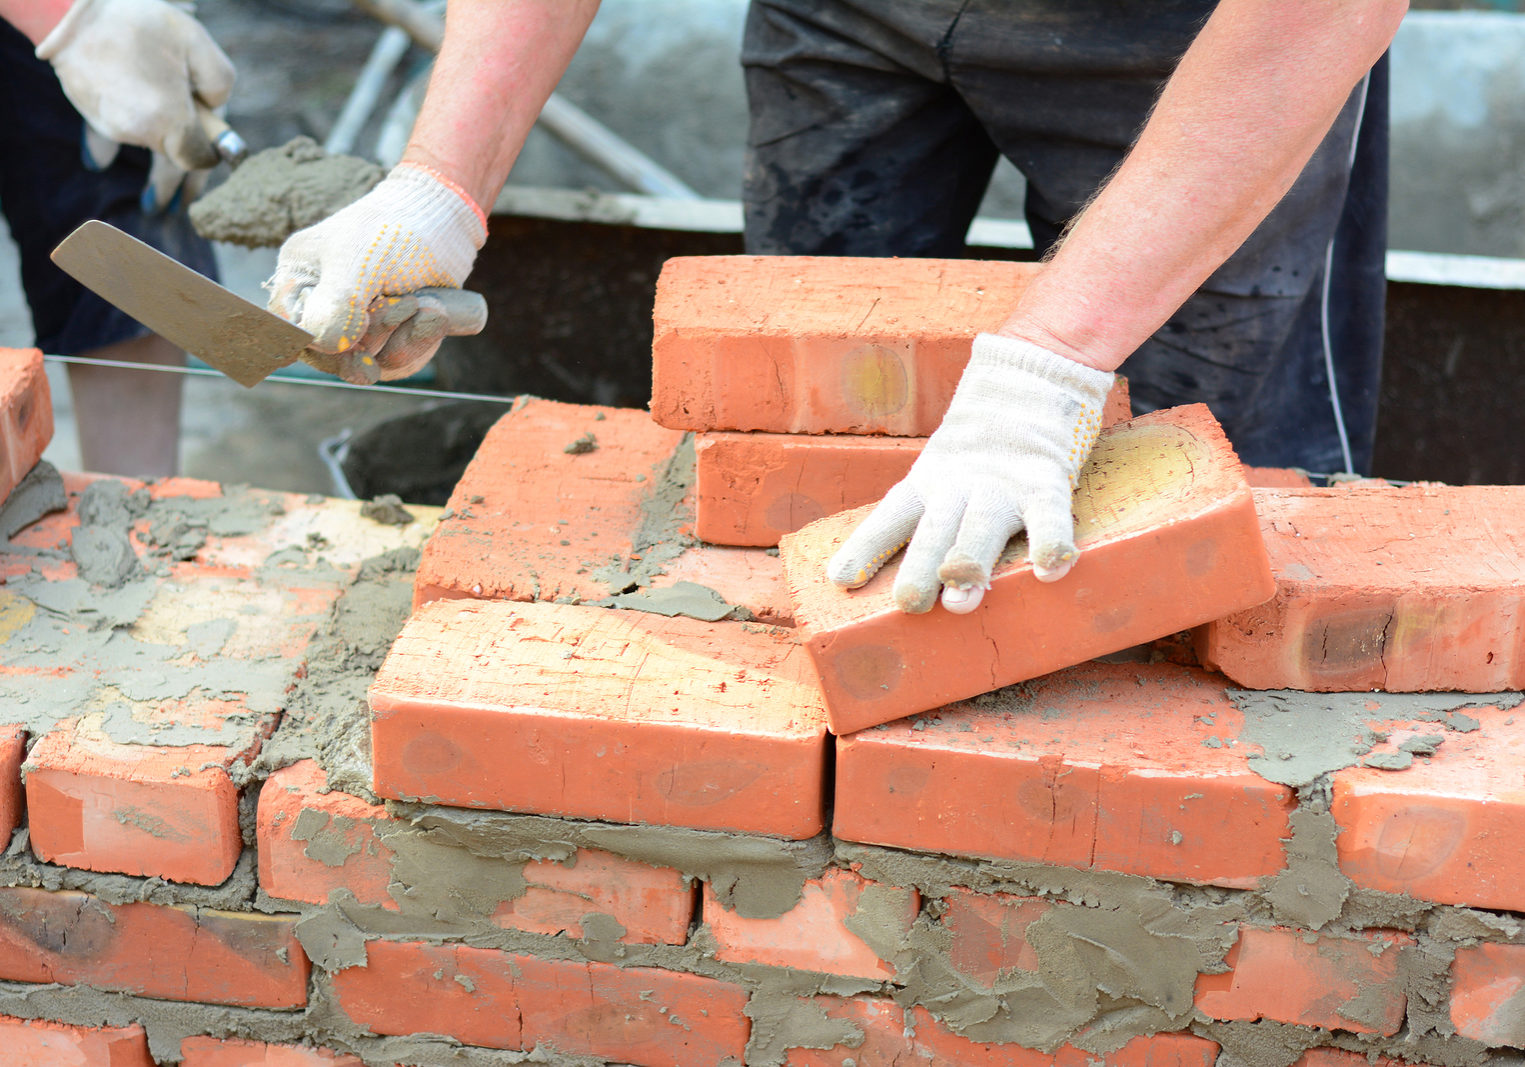 Bricklayer hands in masonry gloves and trowels bricklaying house wall. Building contractors bricklaying house wall,  masonry.